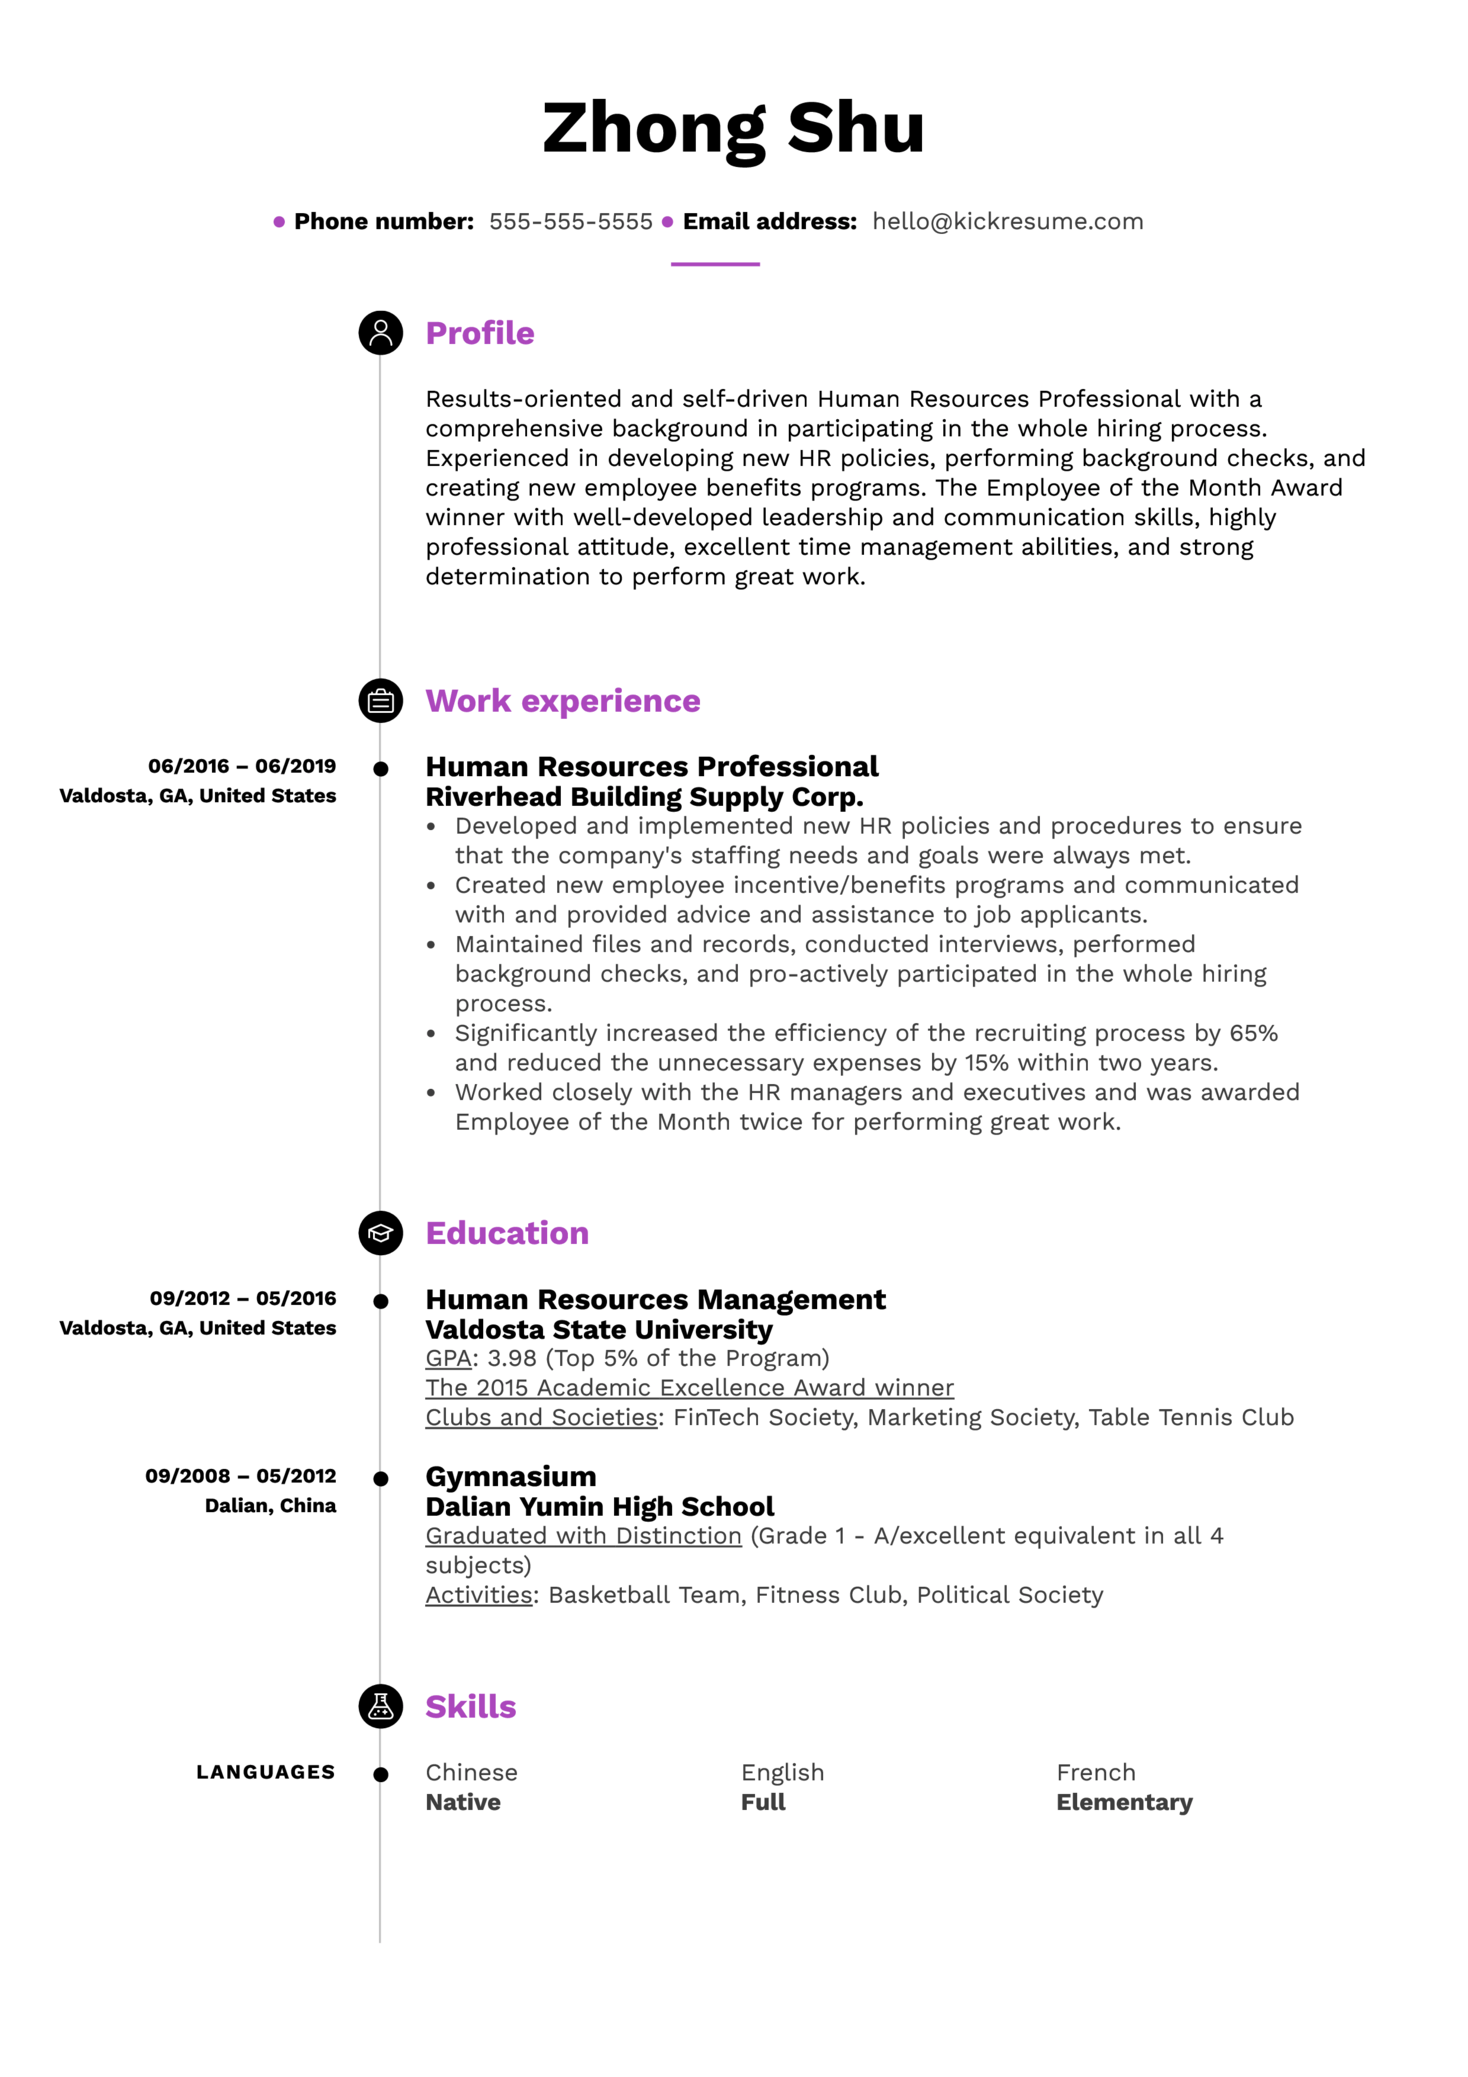 Human Resources Professional Resume Example (Teil 1)